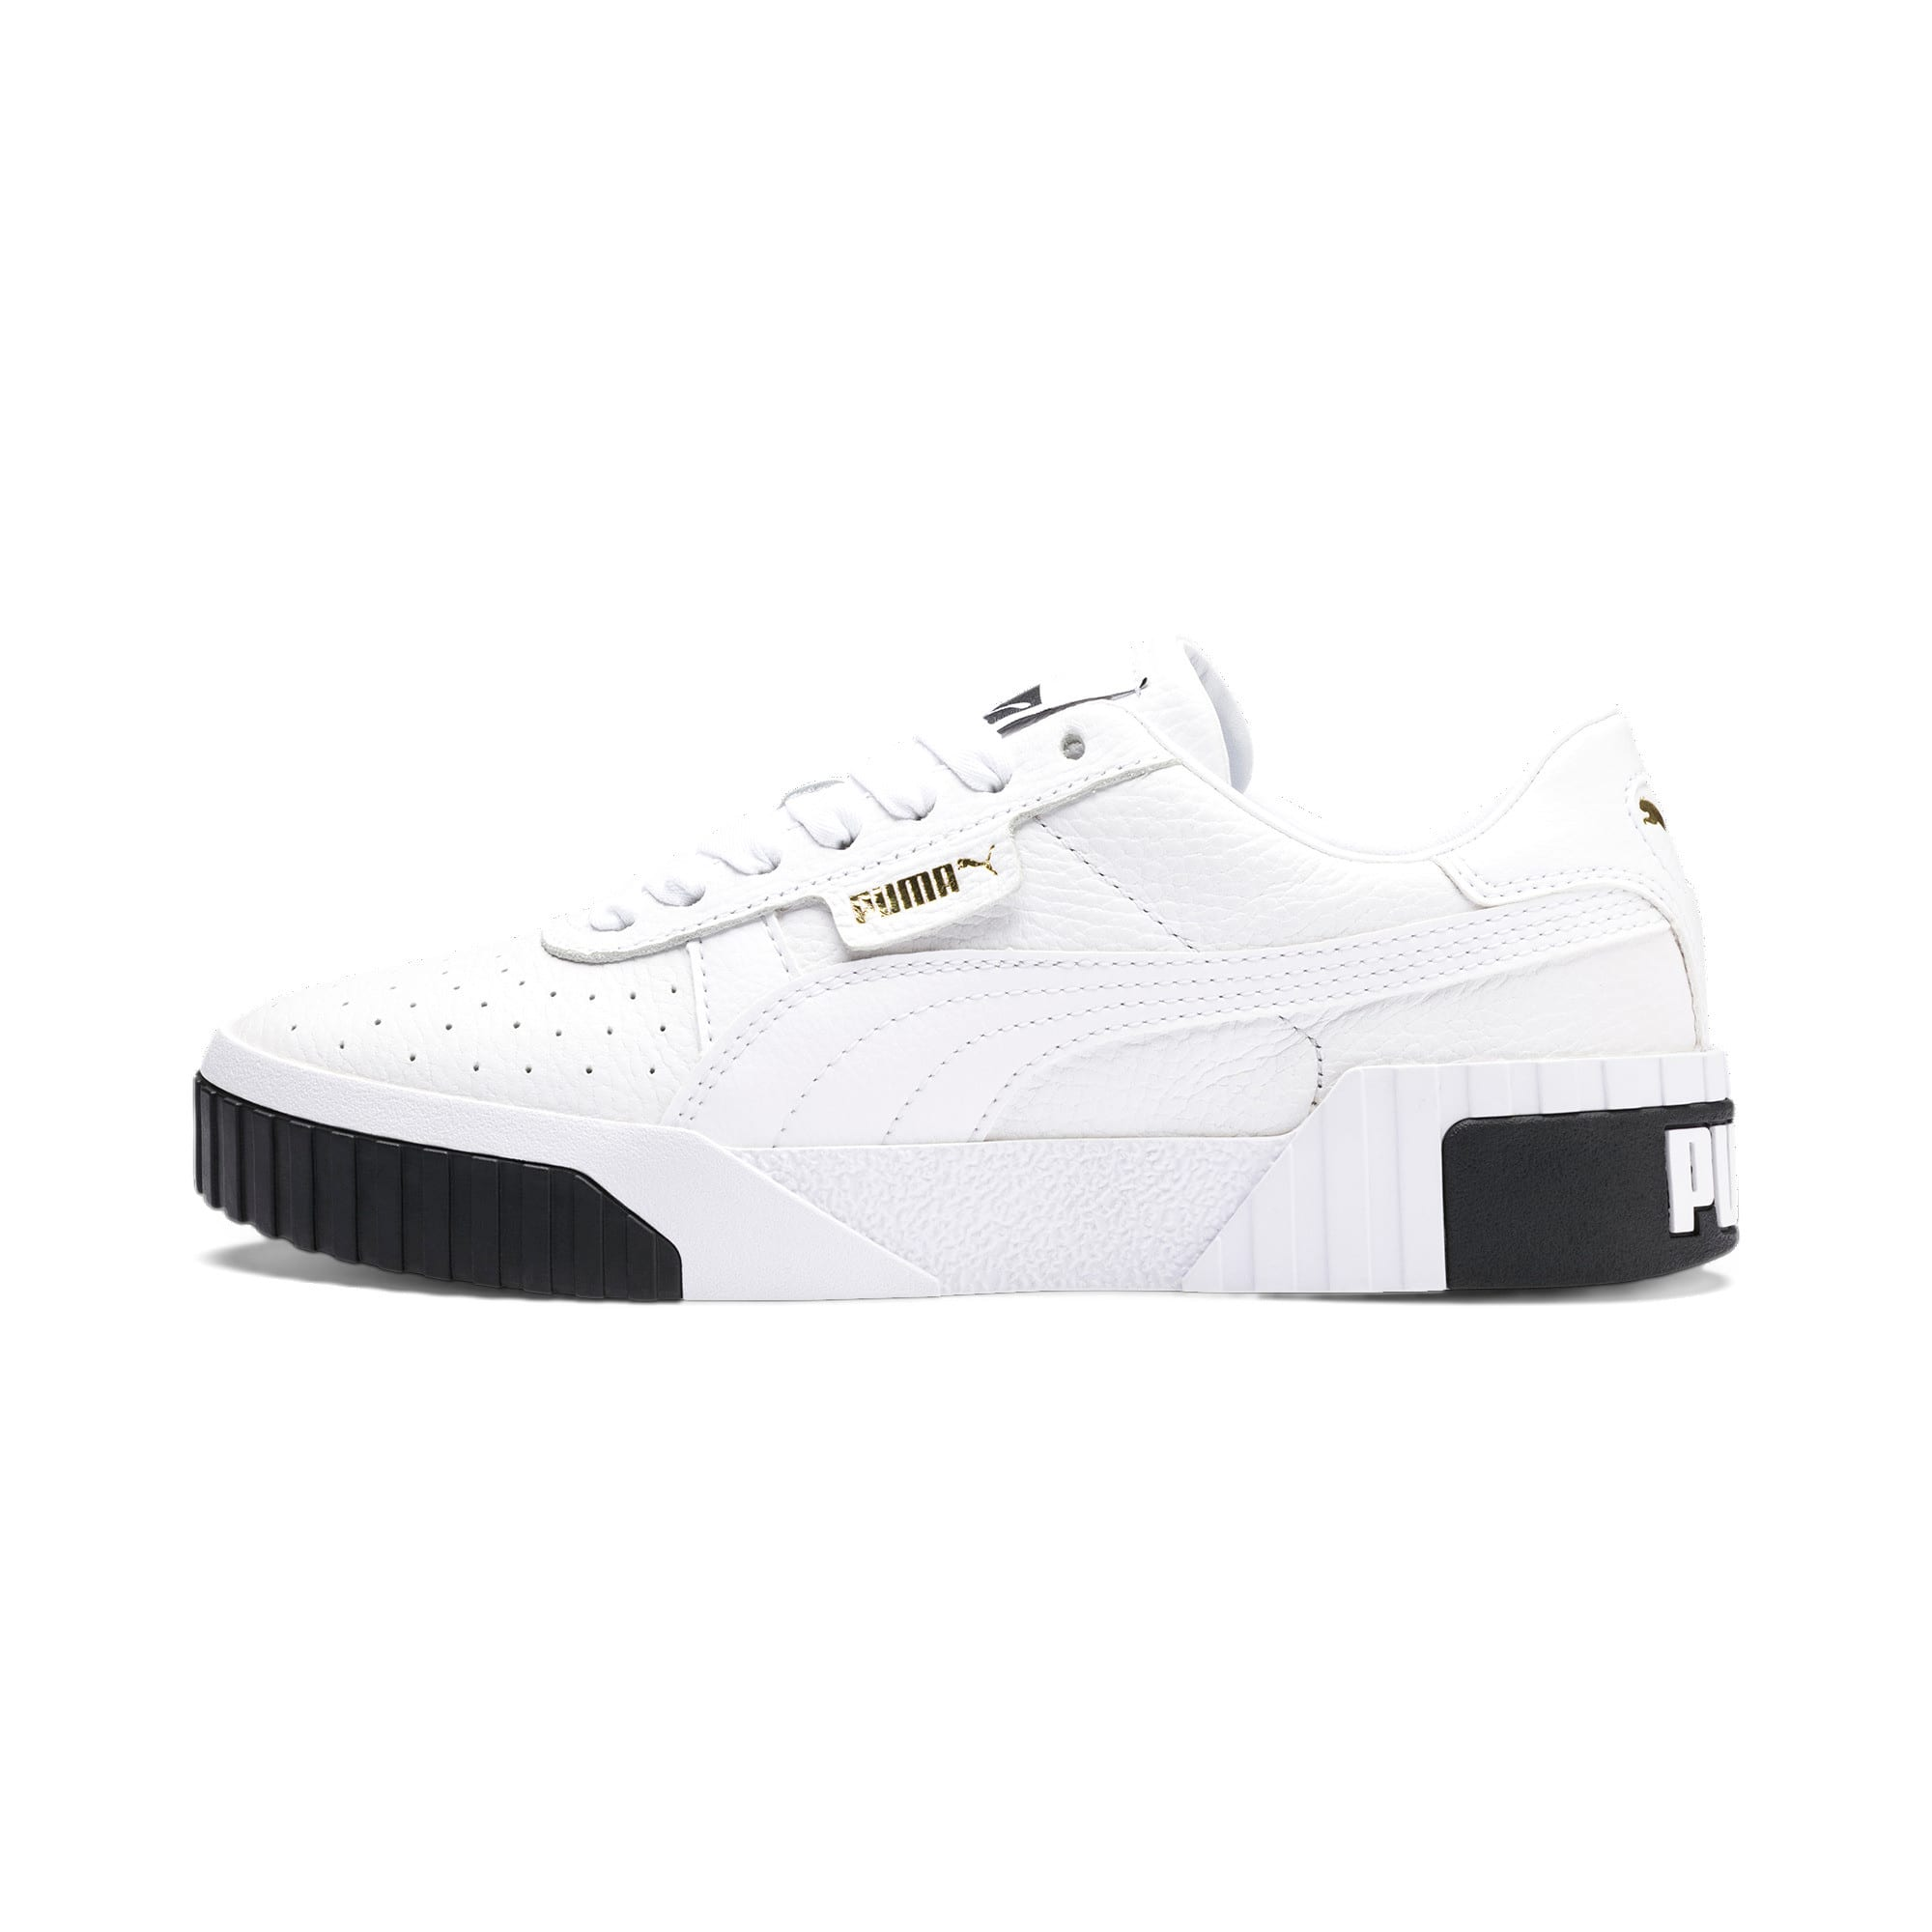 Thumbnail 1 of Cali Women's Trainers, Puma White-Puma Black, medium